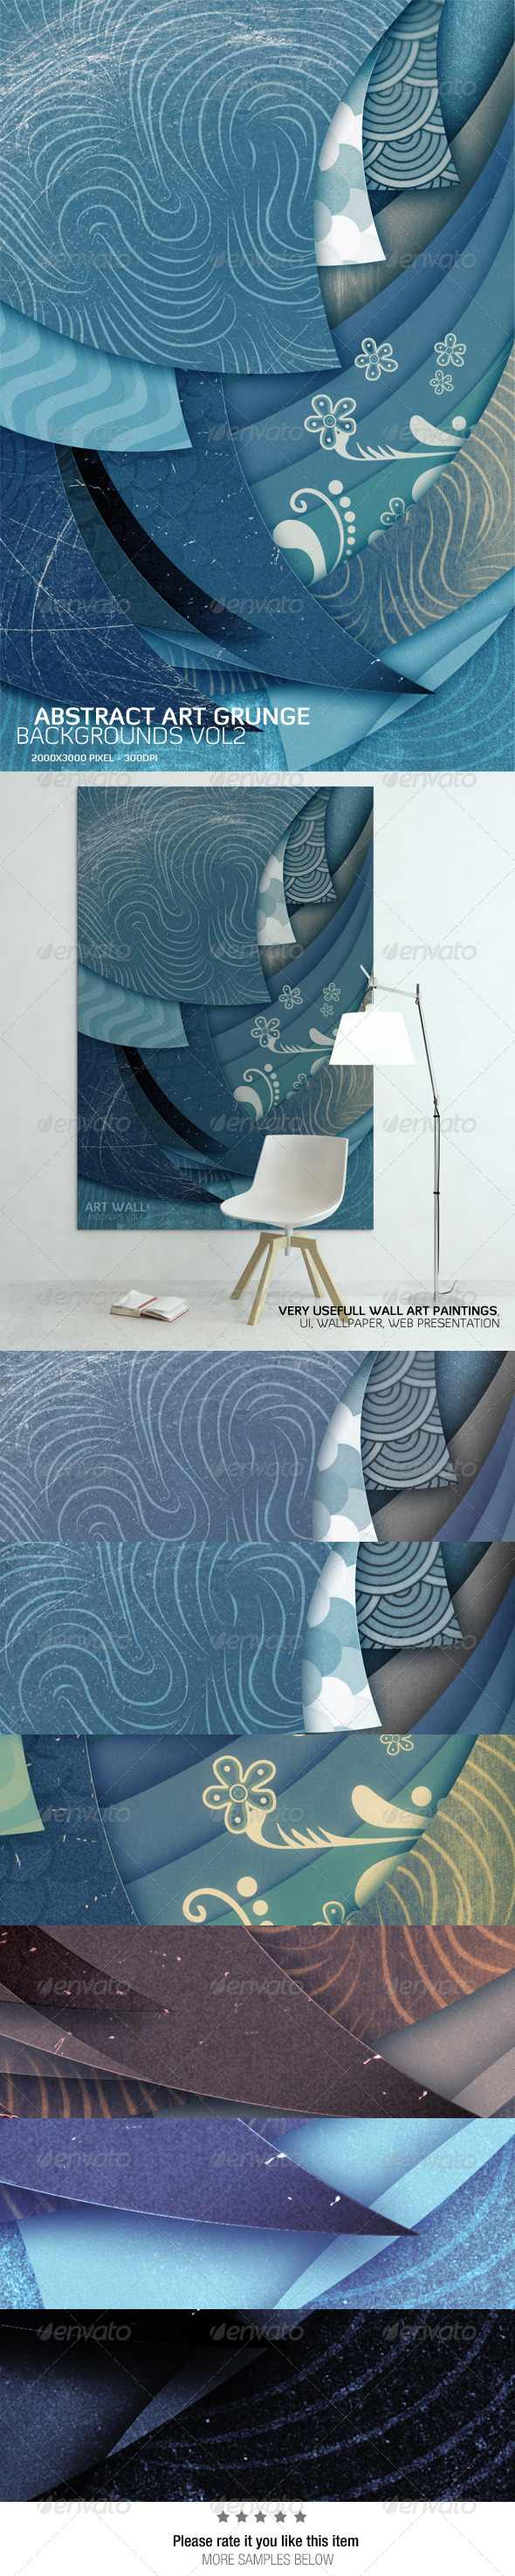 Abstract Art Grunge Background Vol2